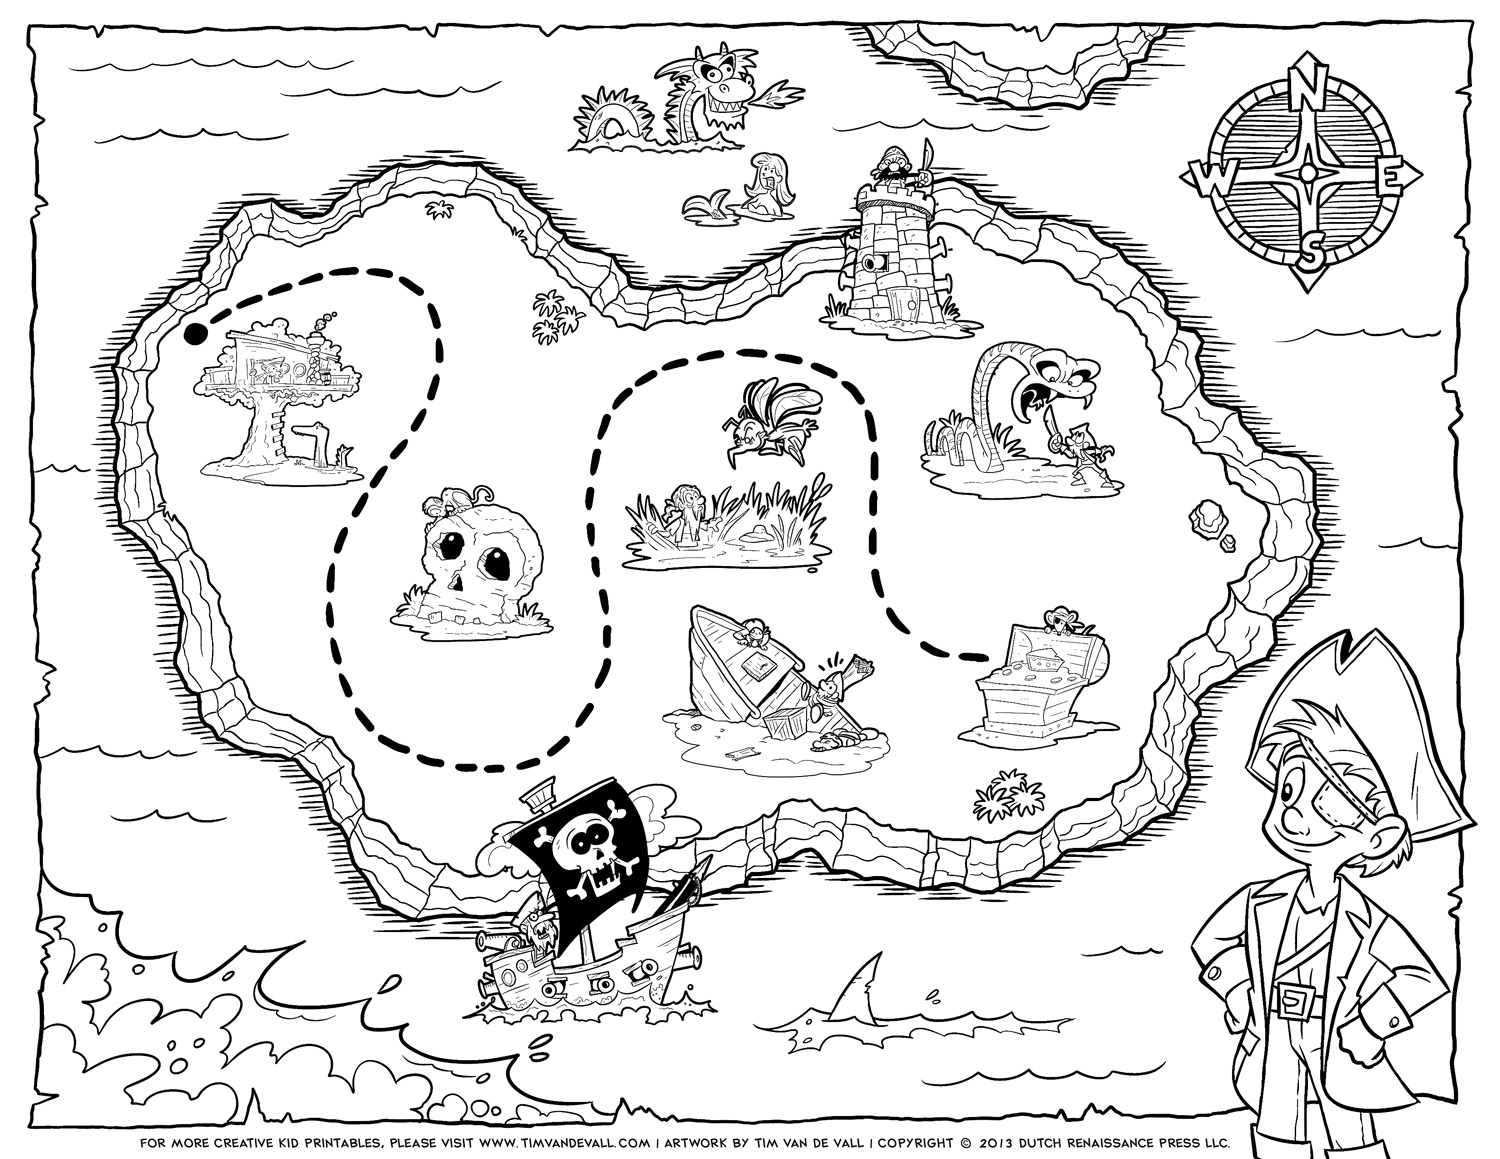 maps coloring pages tim van de vall comics printables for kids